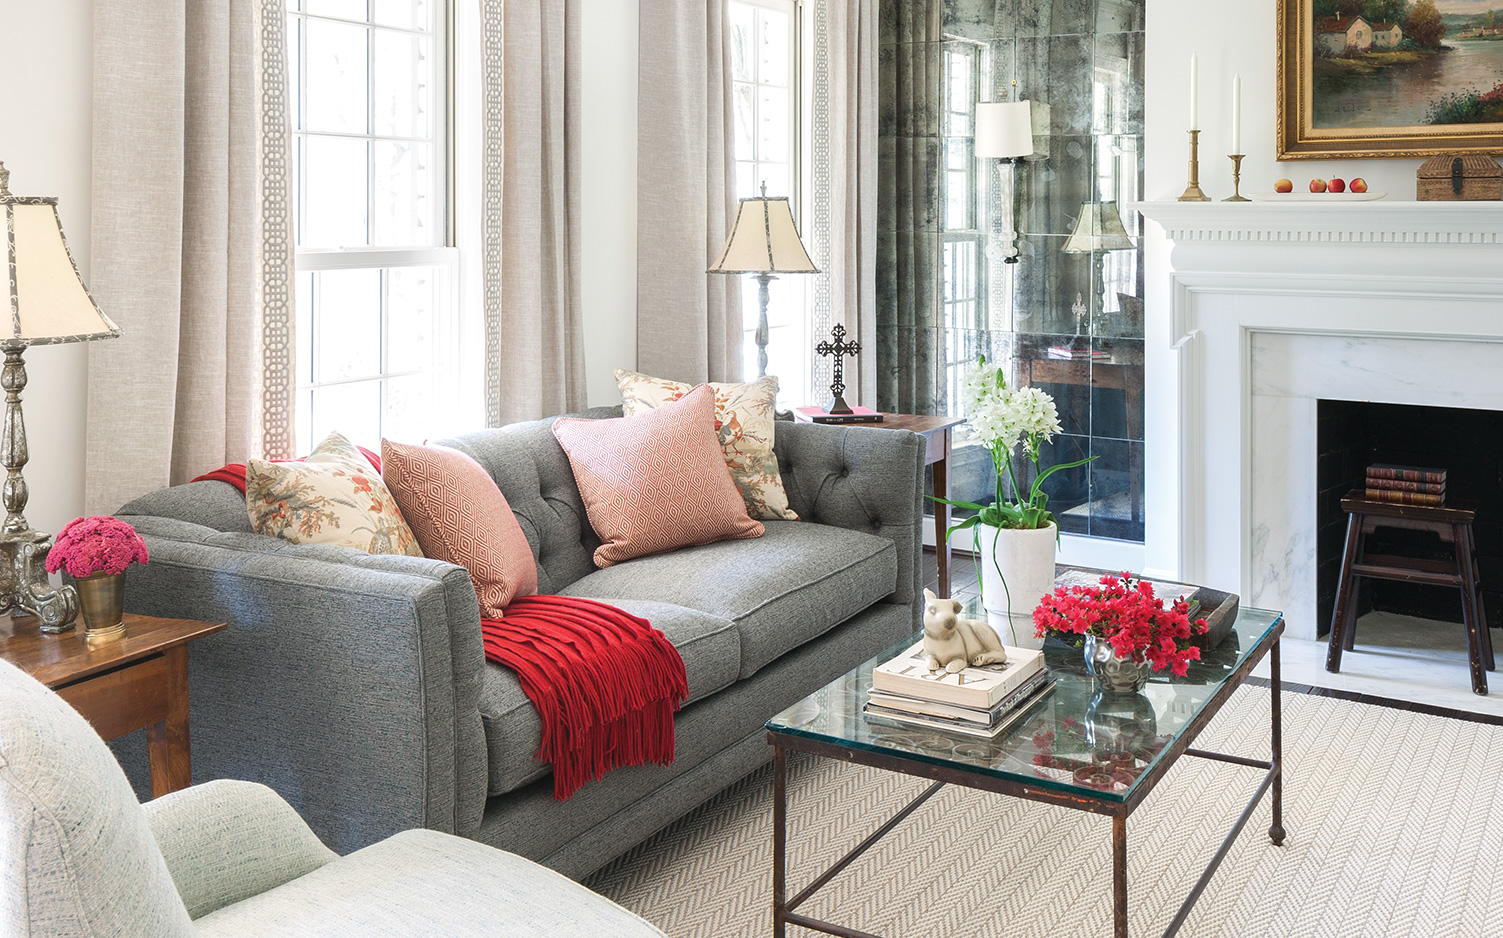 Our New Southern Style At Home Special Issue Celebrates The Splendor Of  Southern Design In All Its Many Formsu2014from The Inside Out. From Farmhouse  Comfort To ...